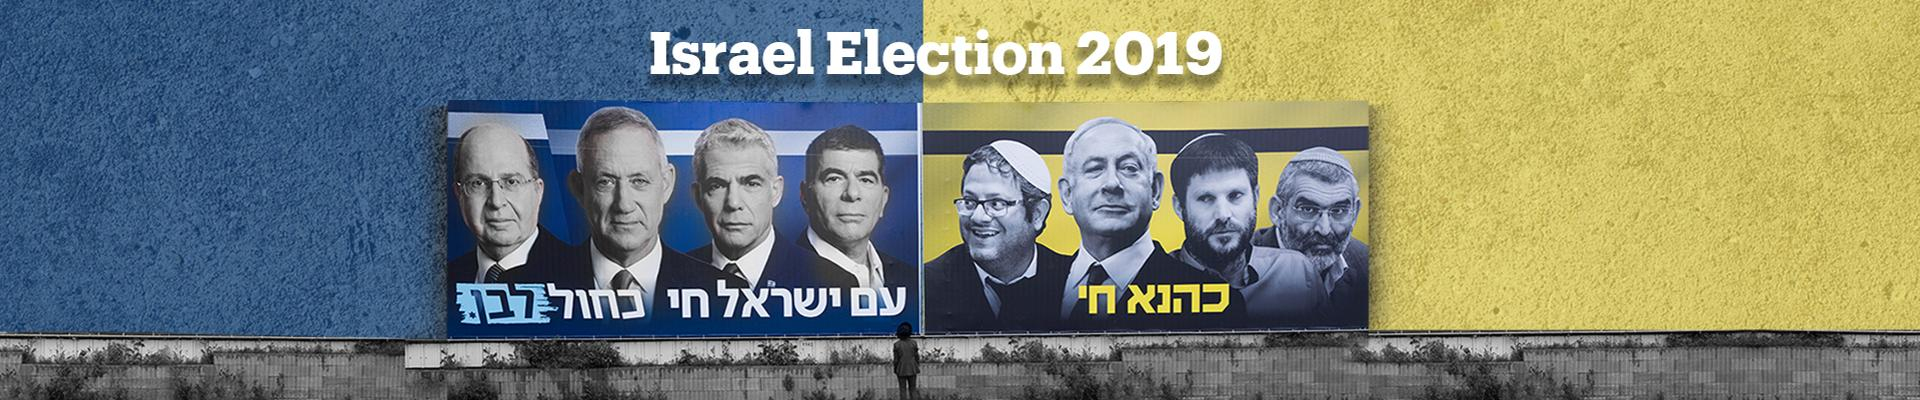 Israel Election 2019